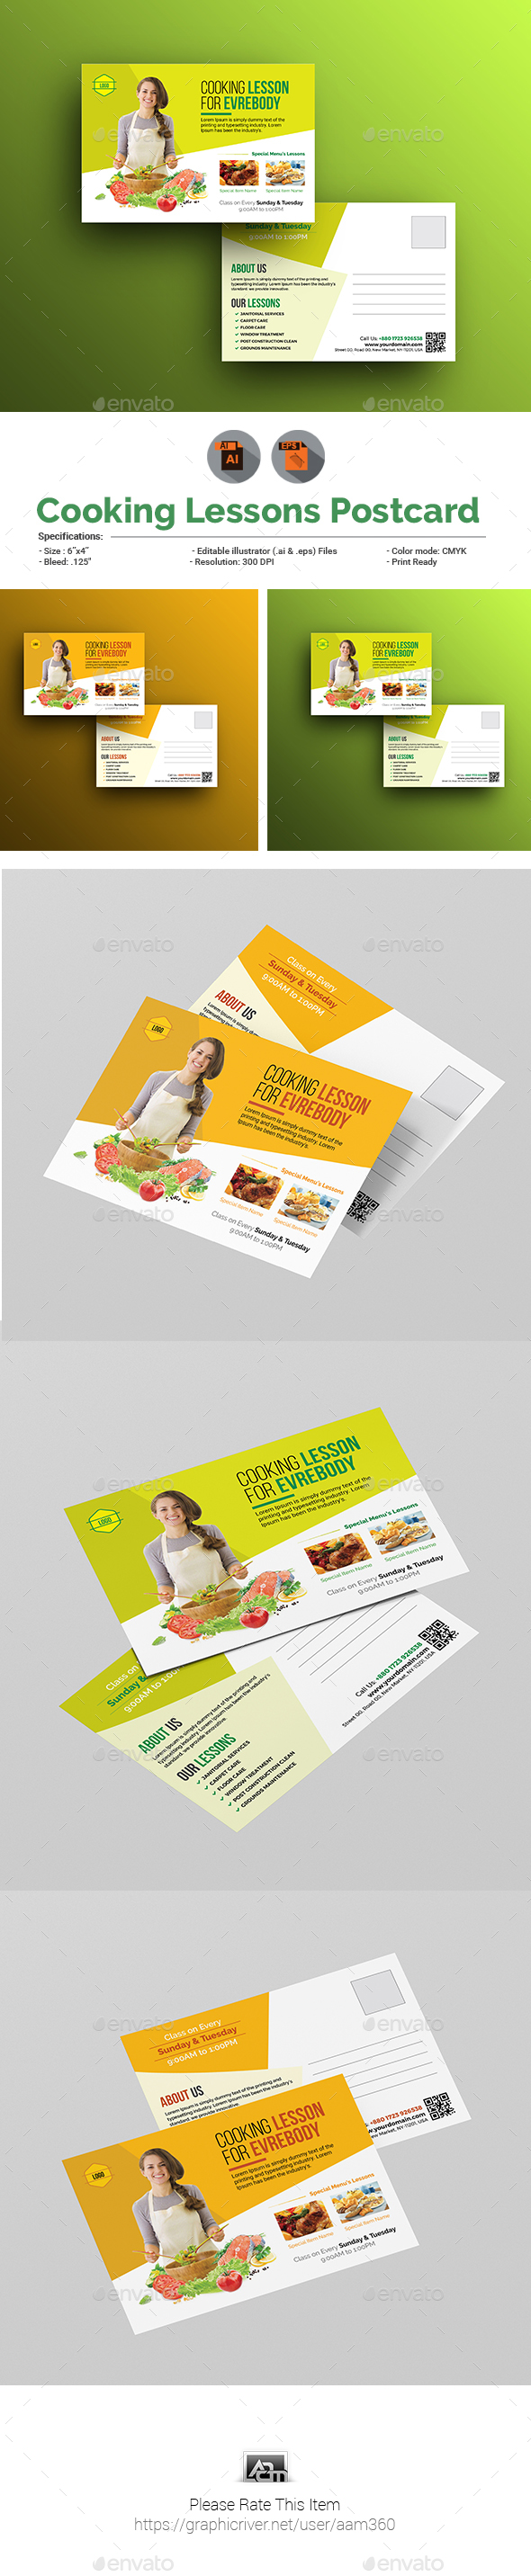 Cooking Lessons Postcard Template - Cards & Invites Print Templates